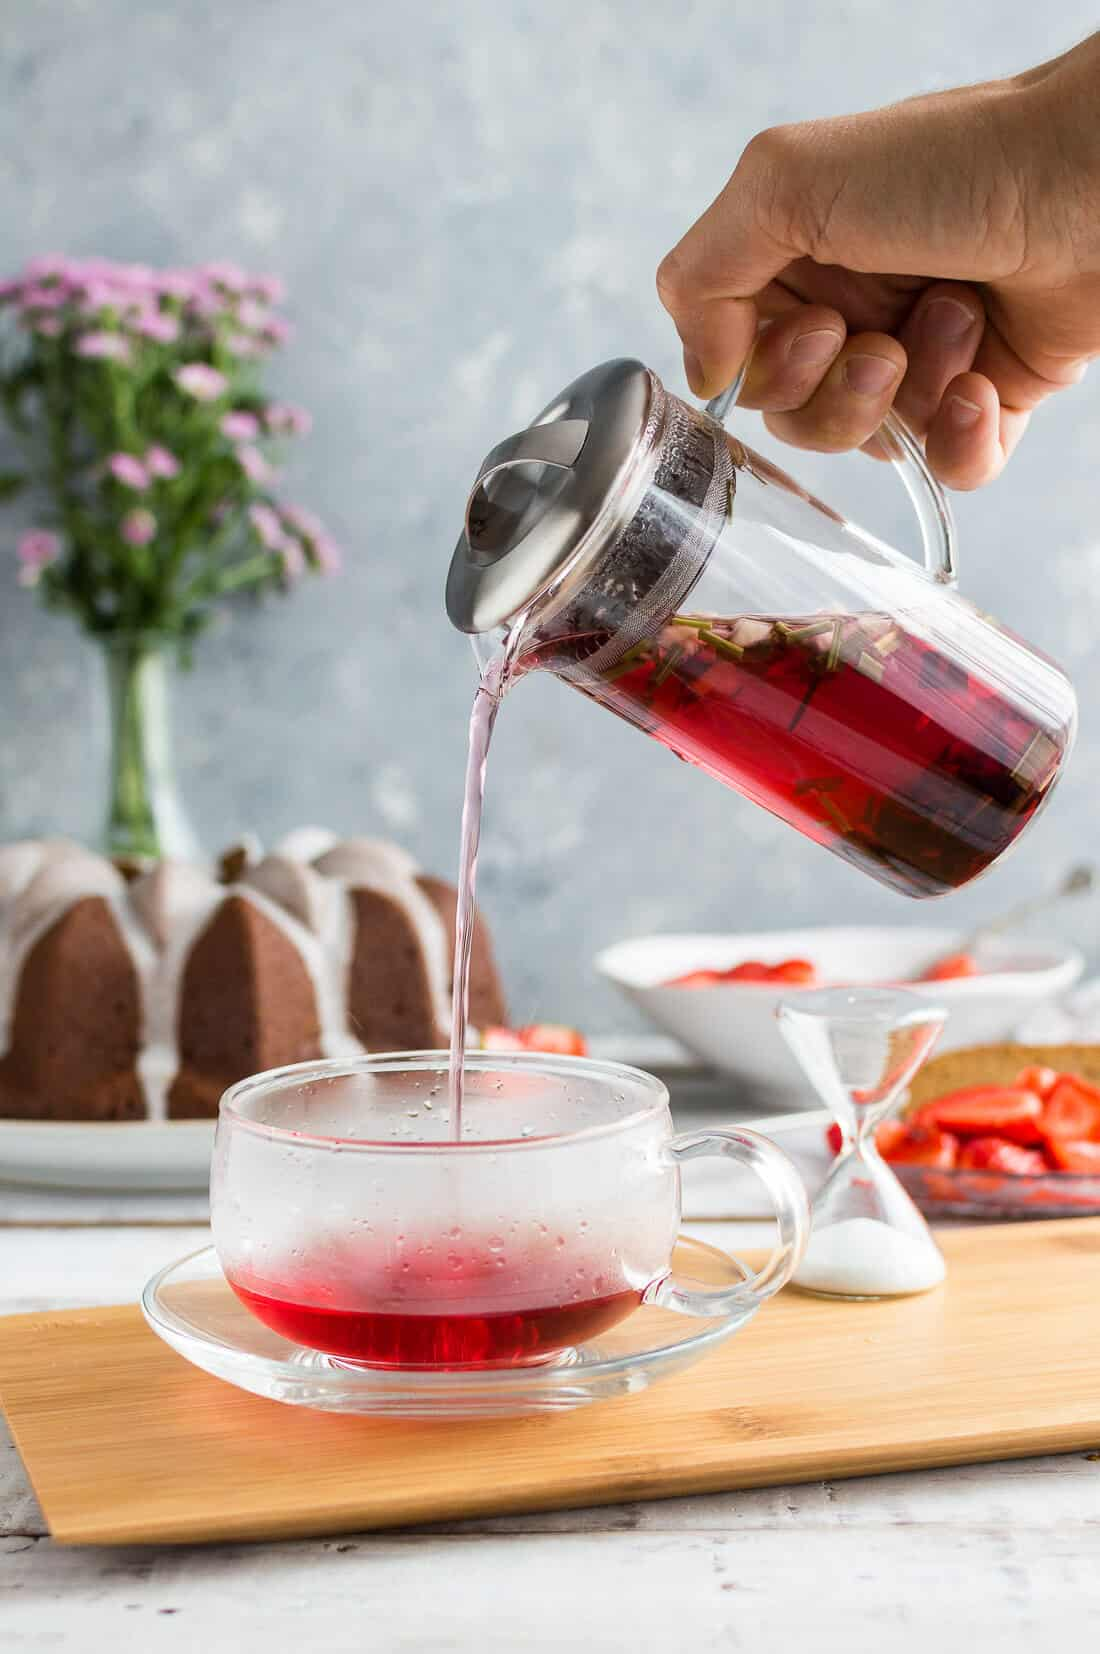 JING Green Apple and Hibiscus herbal tea being poured into a glass teacup